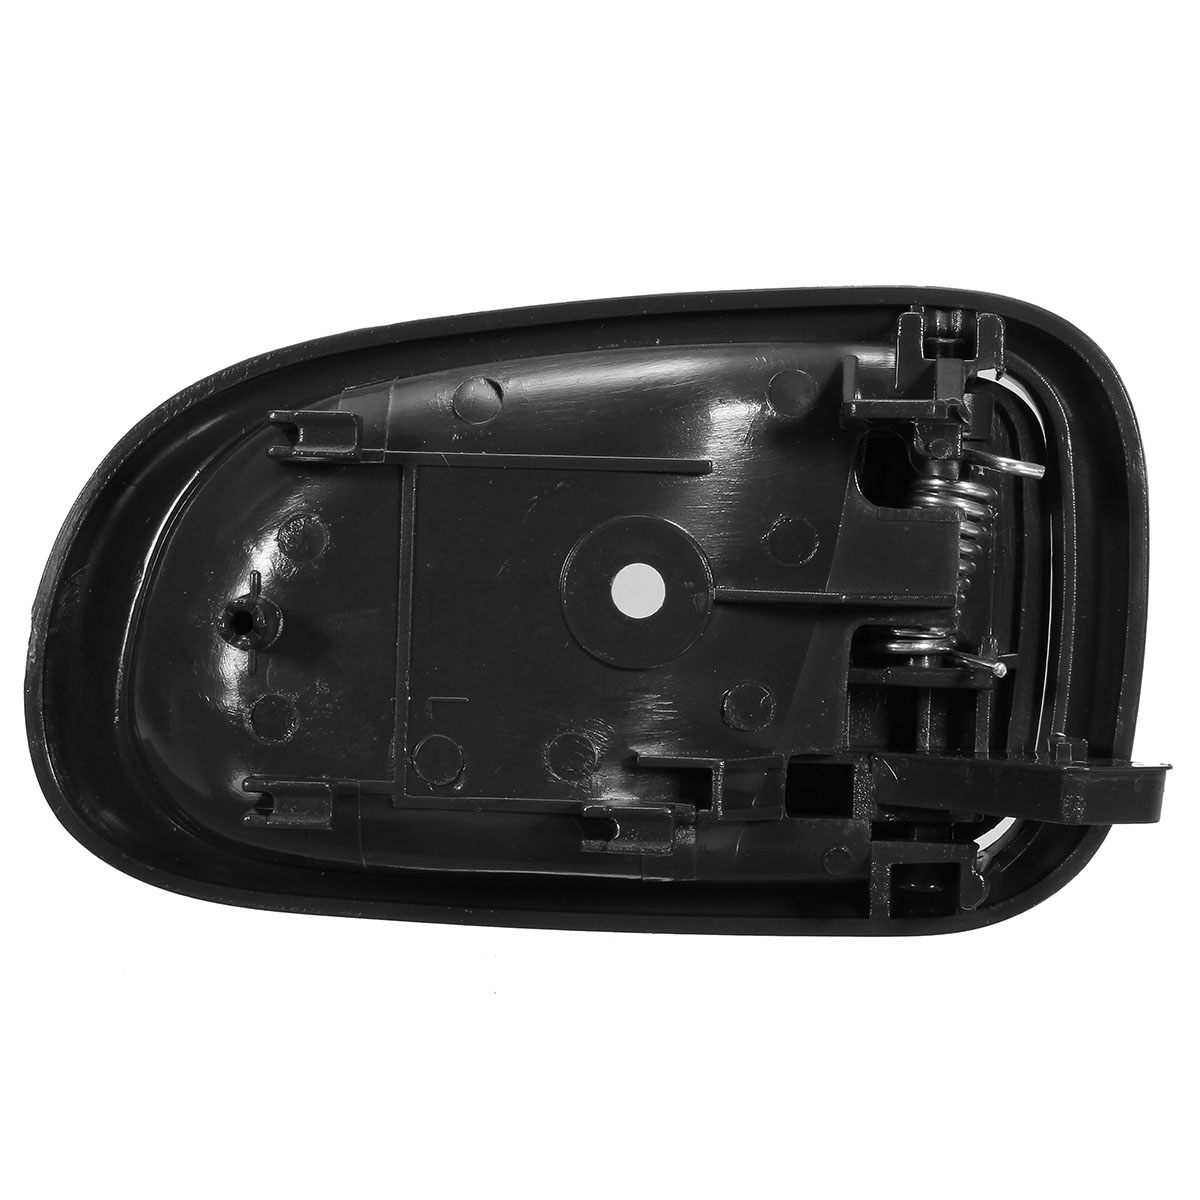 Front Rear Left Right Inside Car Door Handle Fit For Toyota Corolla 93-97